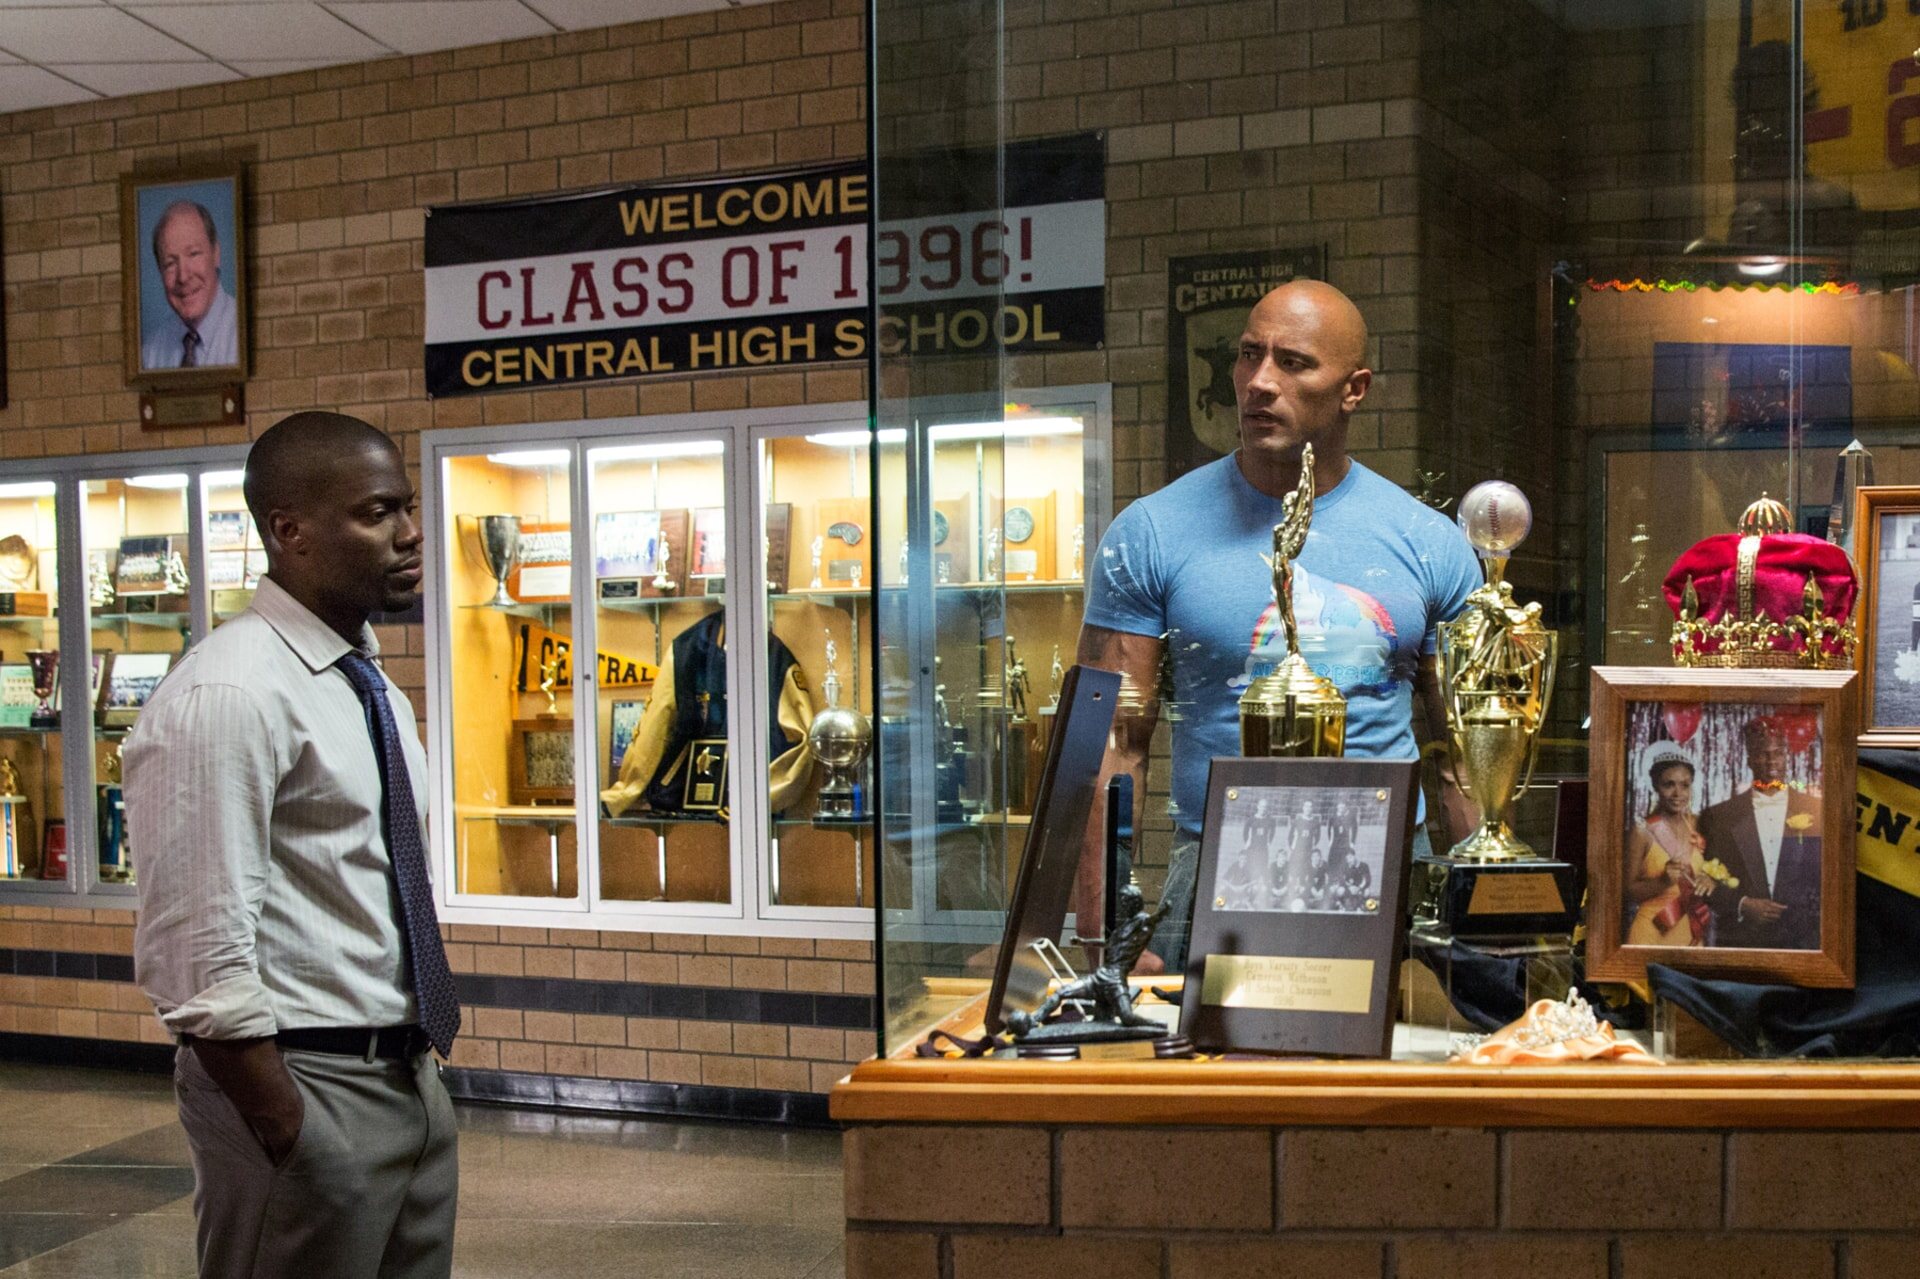 KEVIN HART as Calvin and DWAYNE JOHNSON as Bob standing in front of a high school trophy case